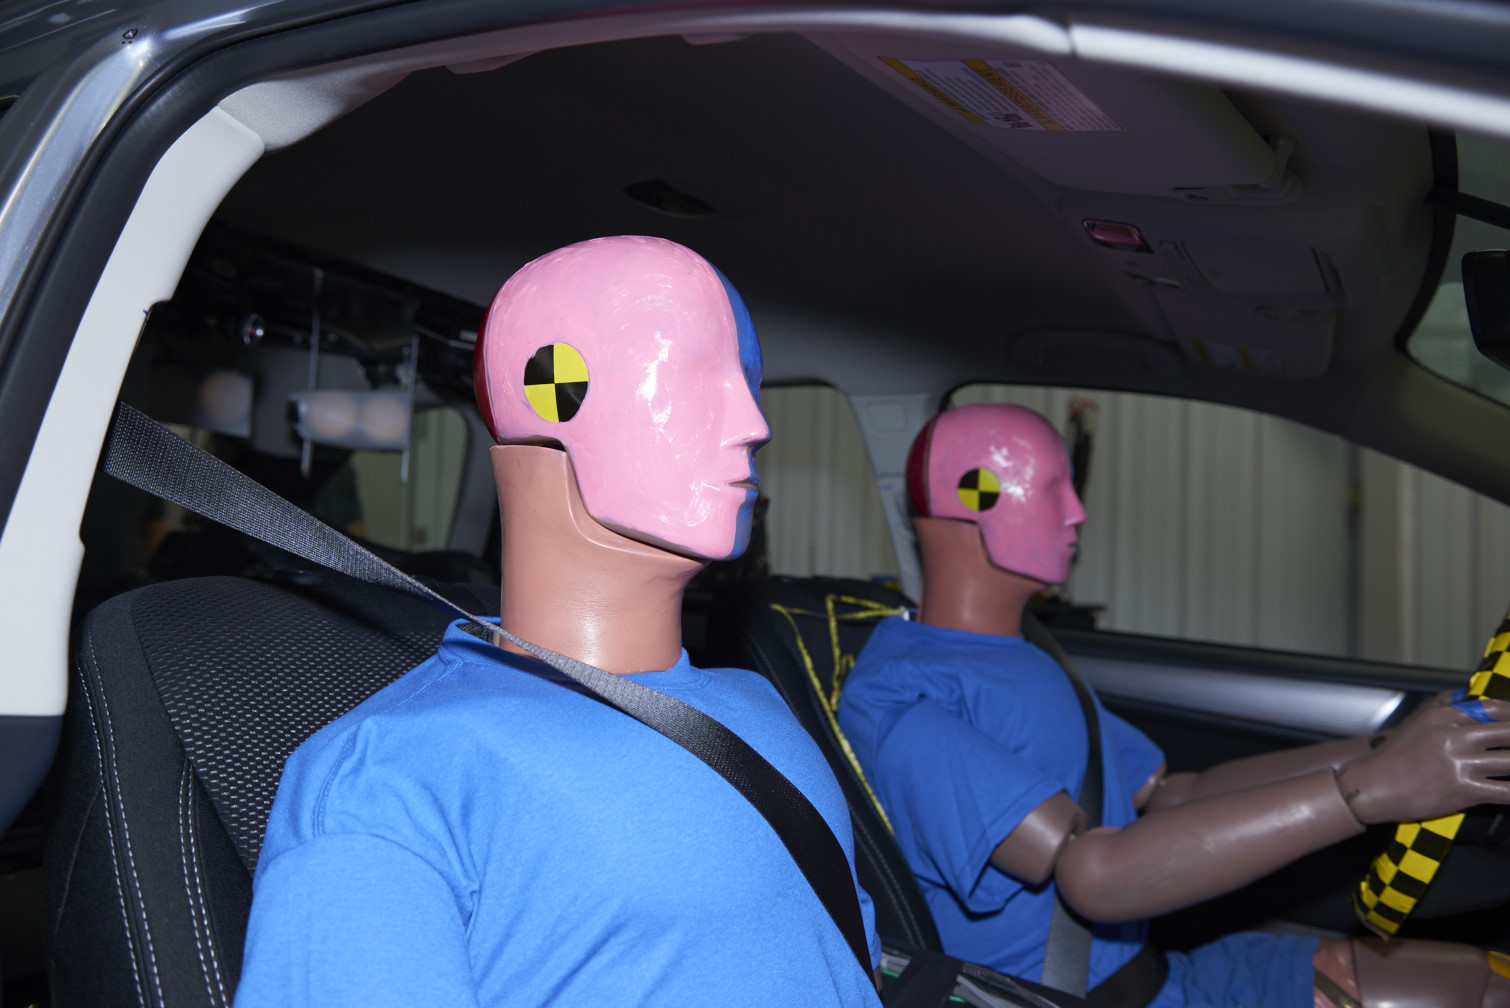 Women are much more likely to be injured in car crashes, probably because crash-test dummies are mostly male-shaped